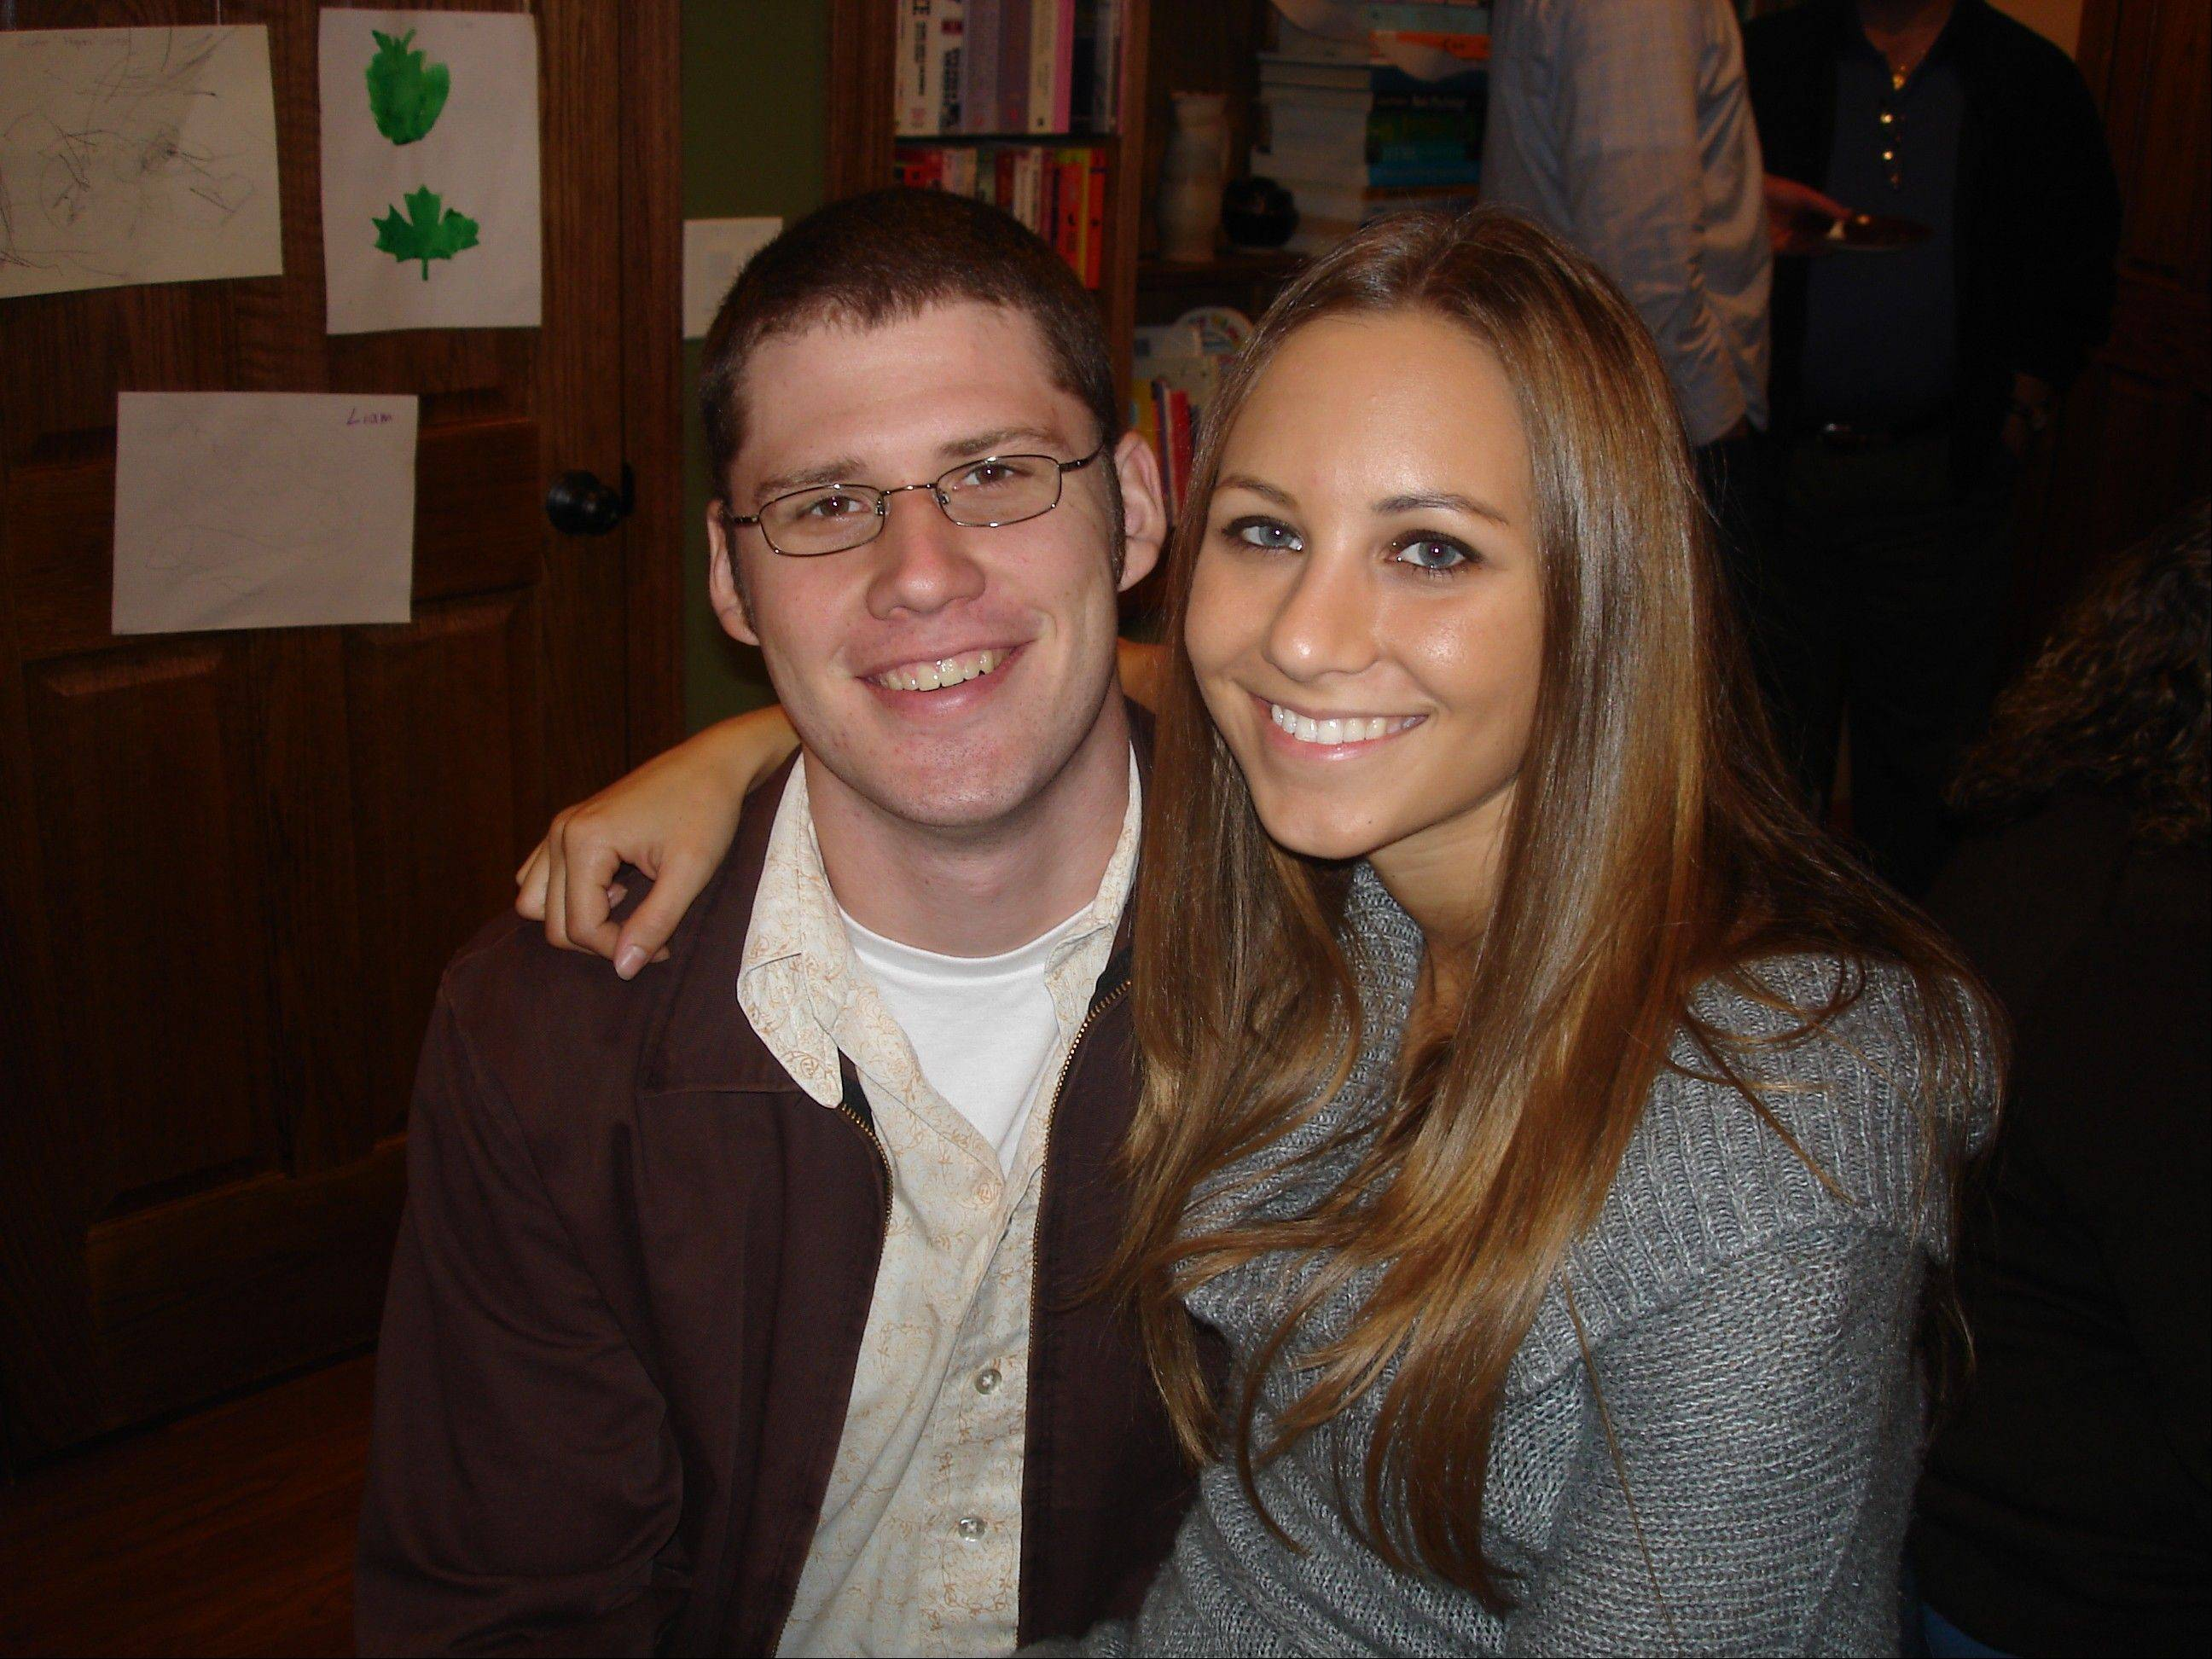 Curtis Thomas with his girlfriend, Christine Szukalla, taken in September 2010.